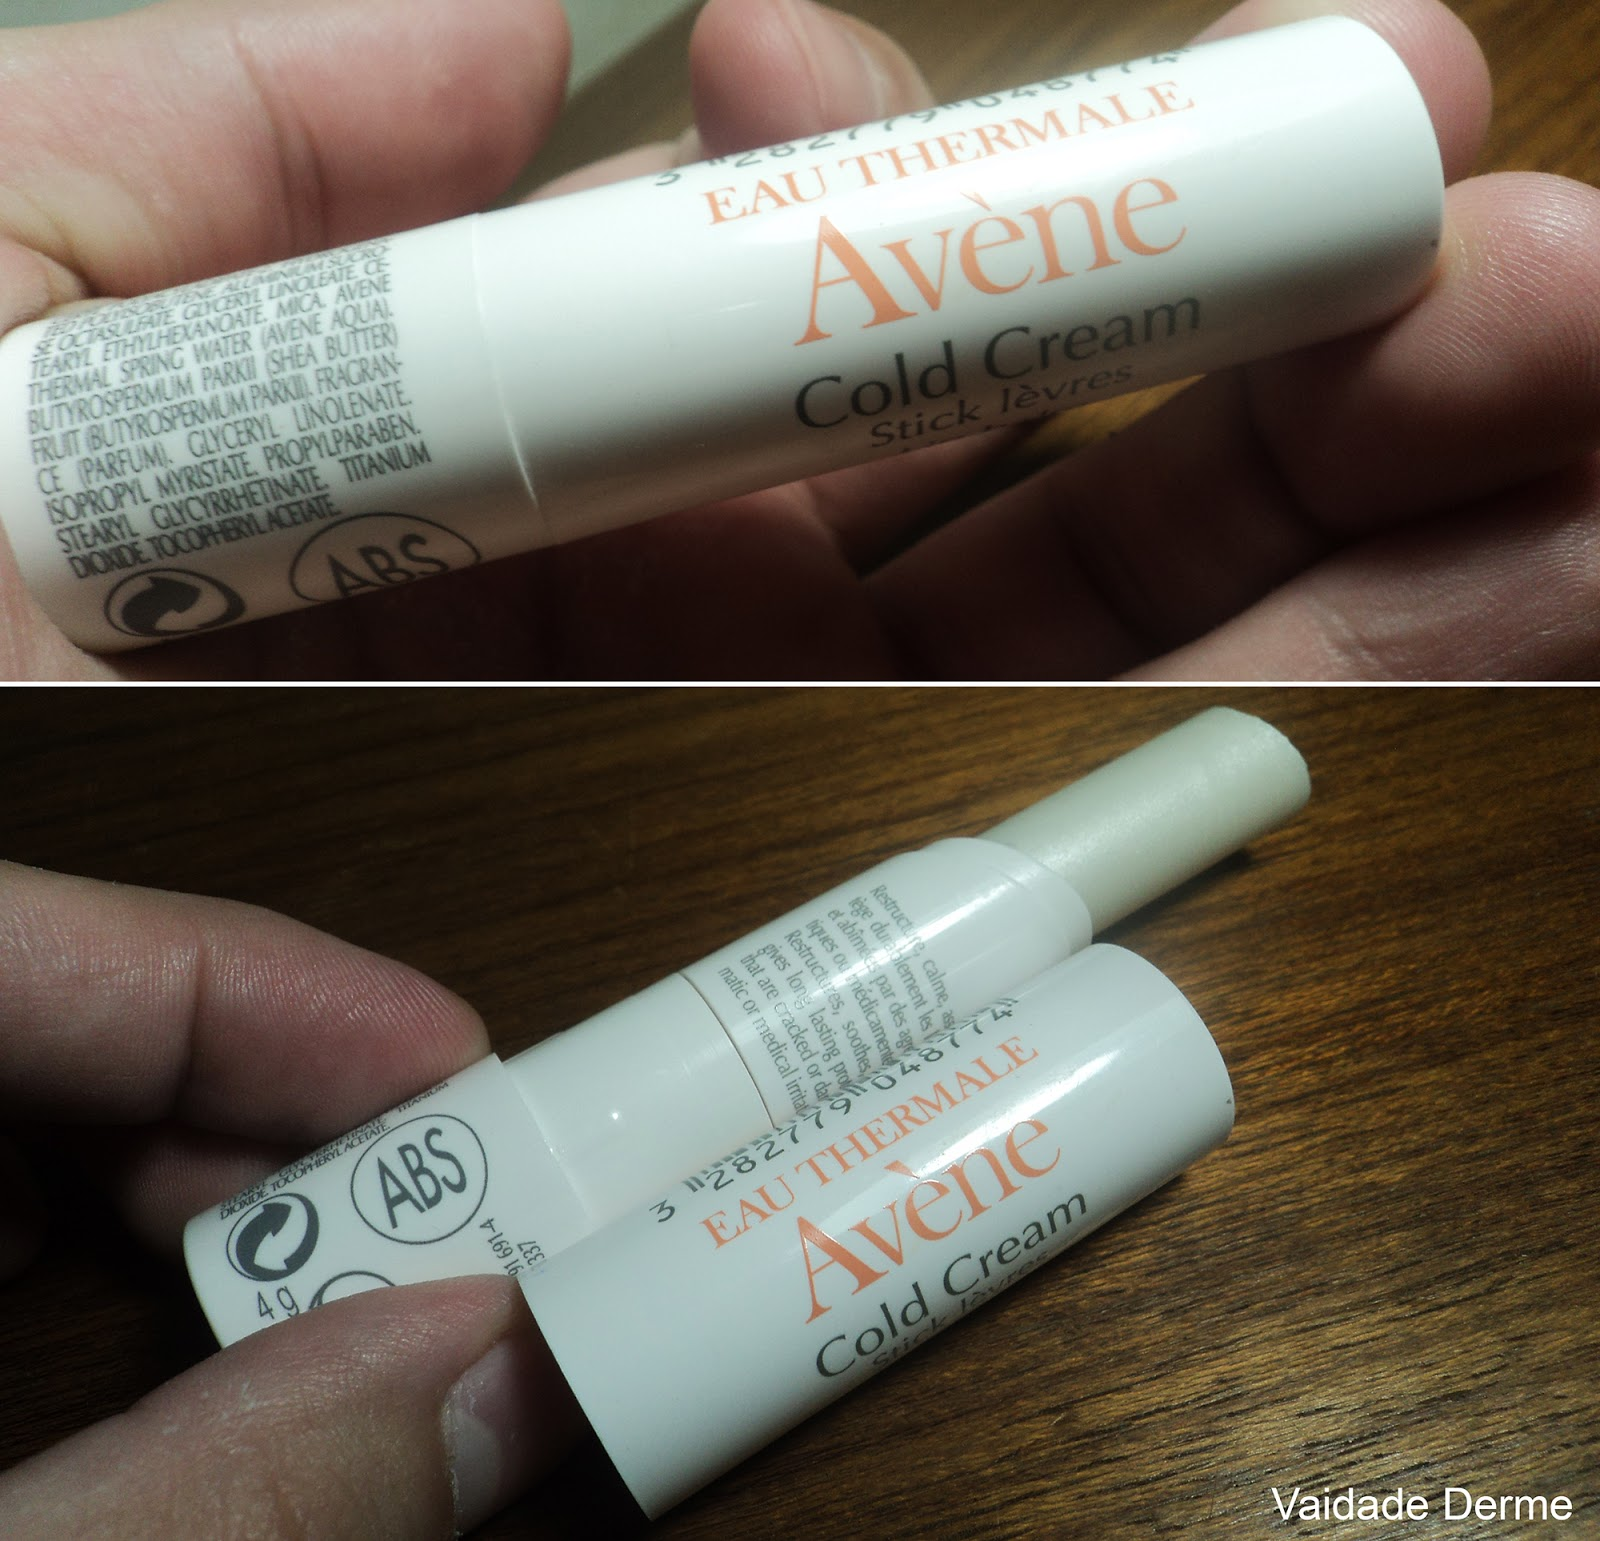 Avène Stick Cold Cream